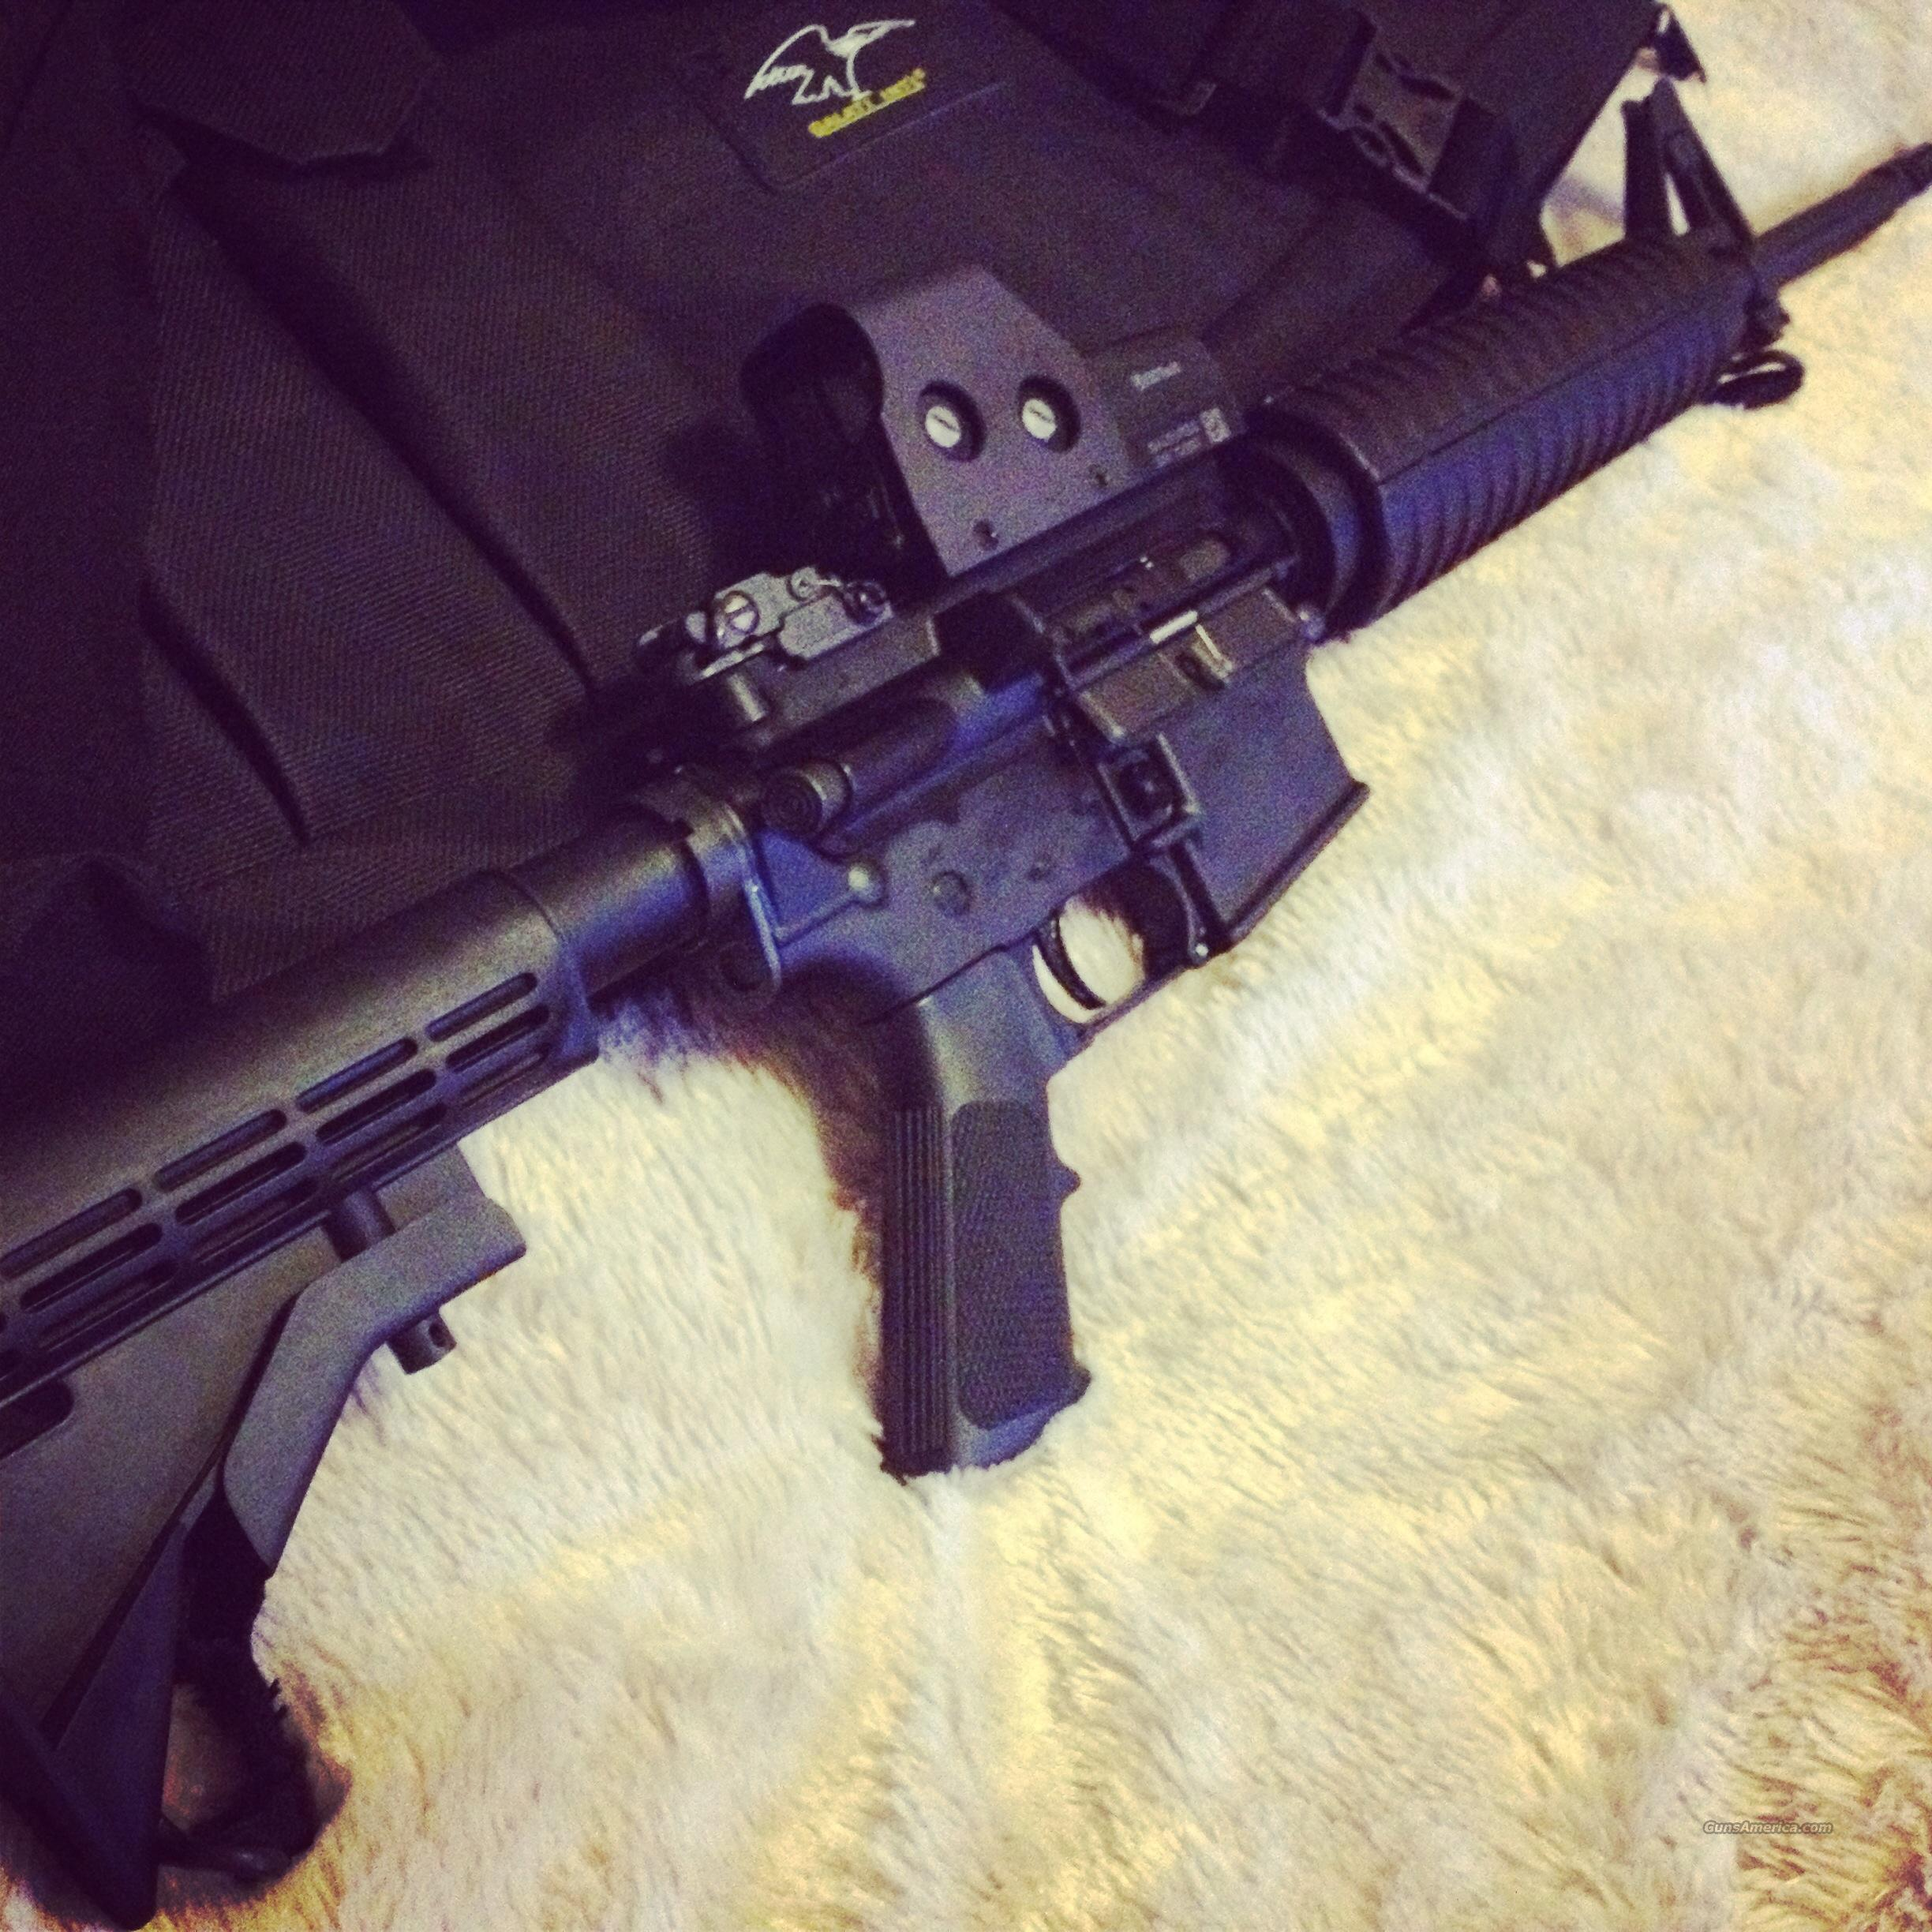 DSA ZM4 Mid-Length Carbine / with L-3 EOTech 553  Guns > Rifles > AR-15 Rifles - Small Manufacturers > Complete Rifle